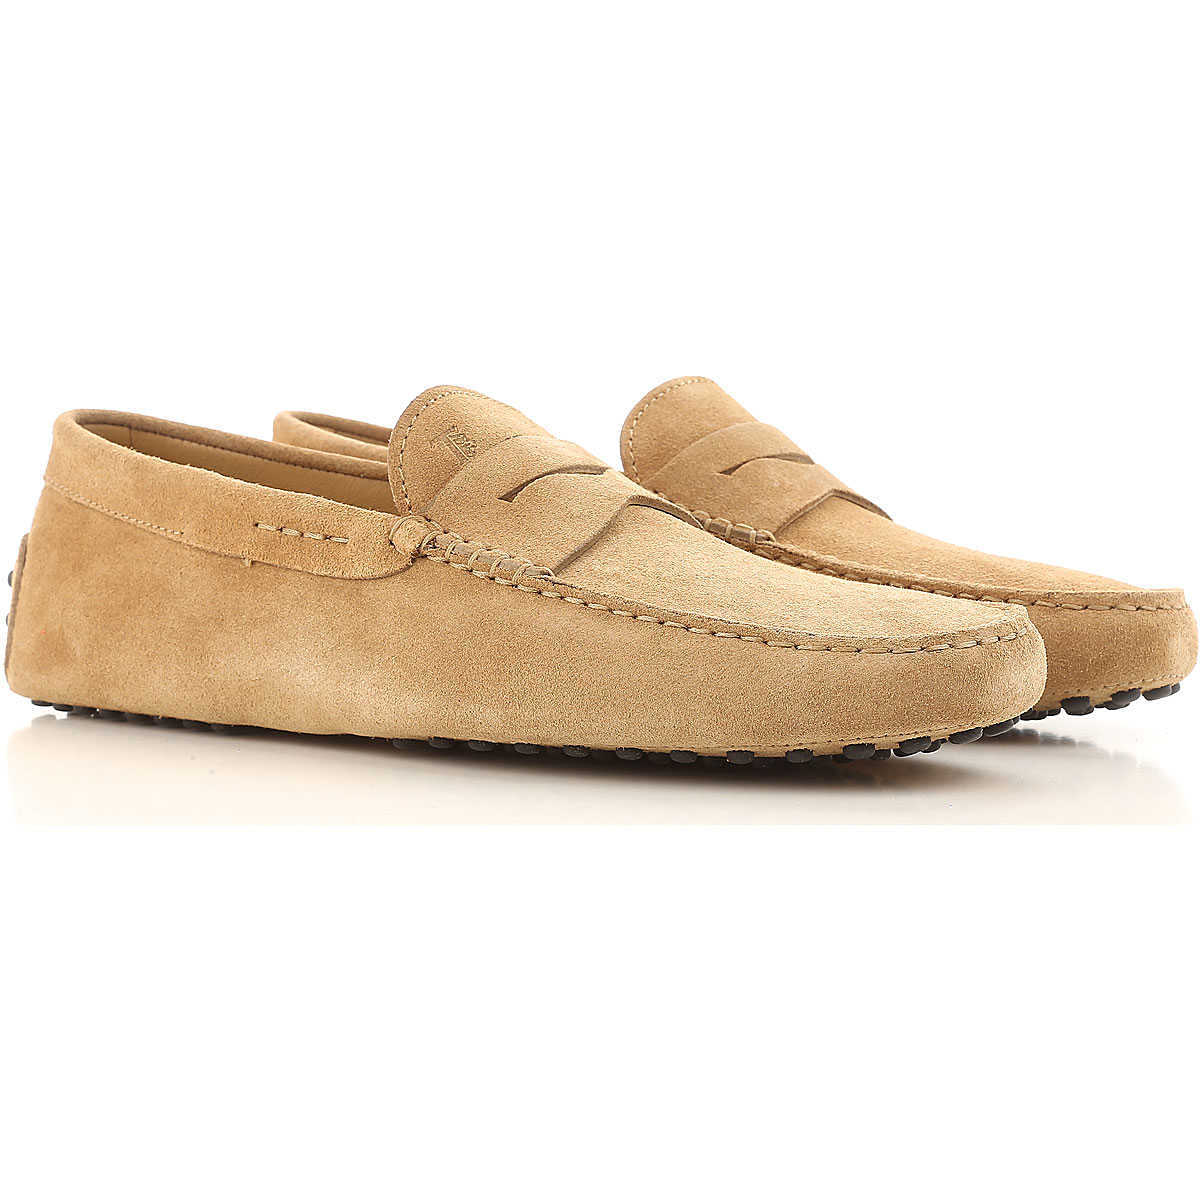 Tods Loafers for Men On Sale cookie DK - GOOFASH - Mens LOAFERS